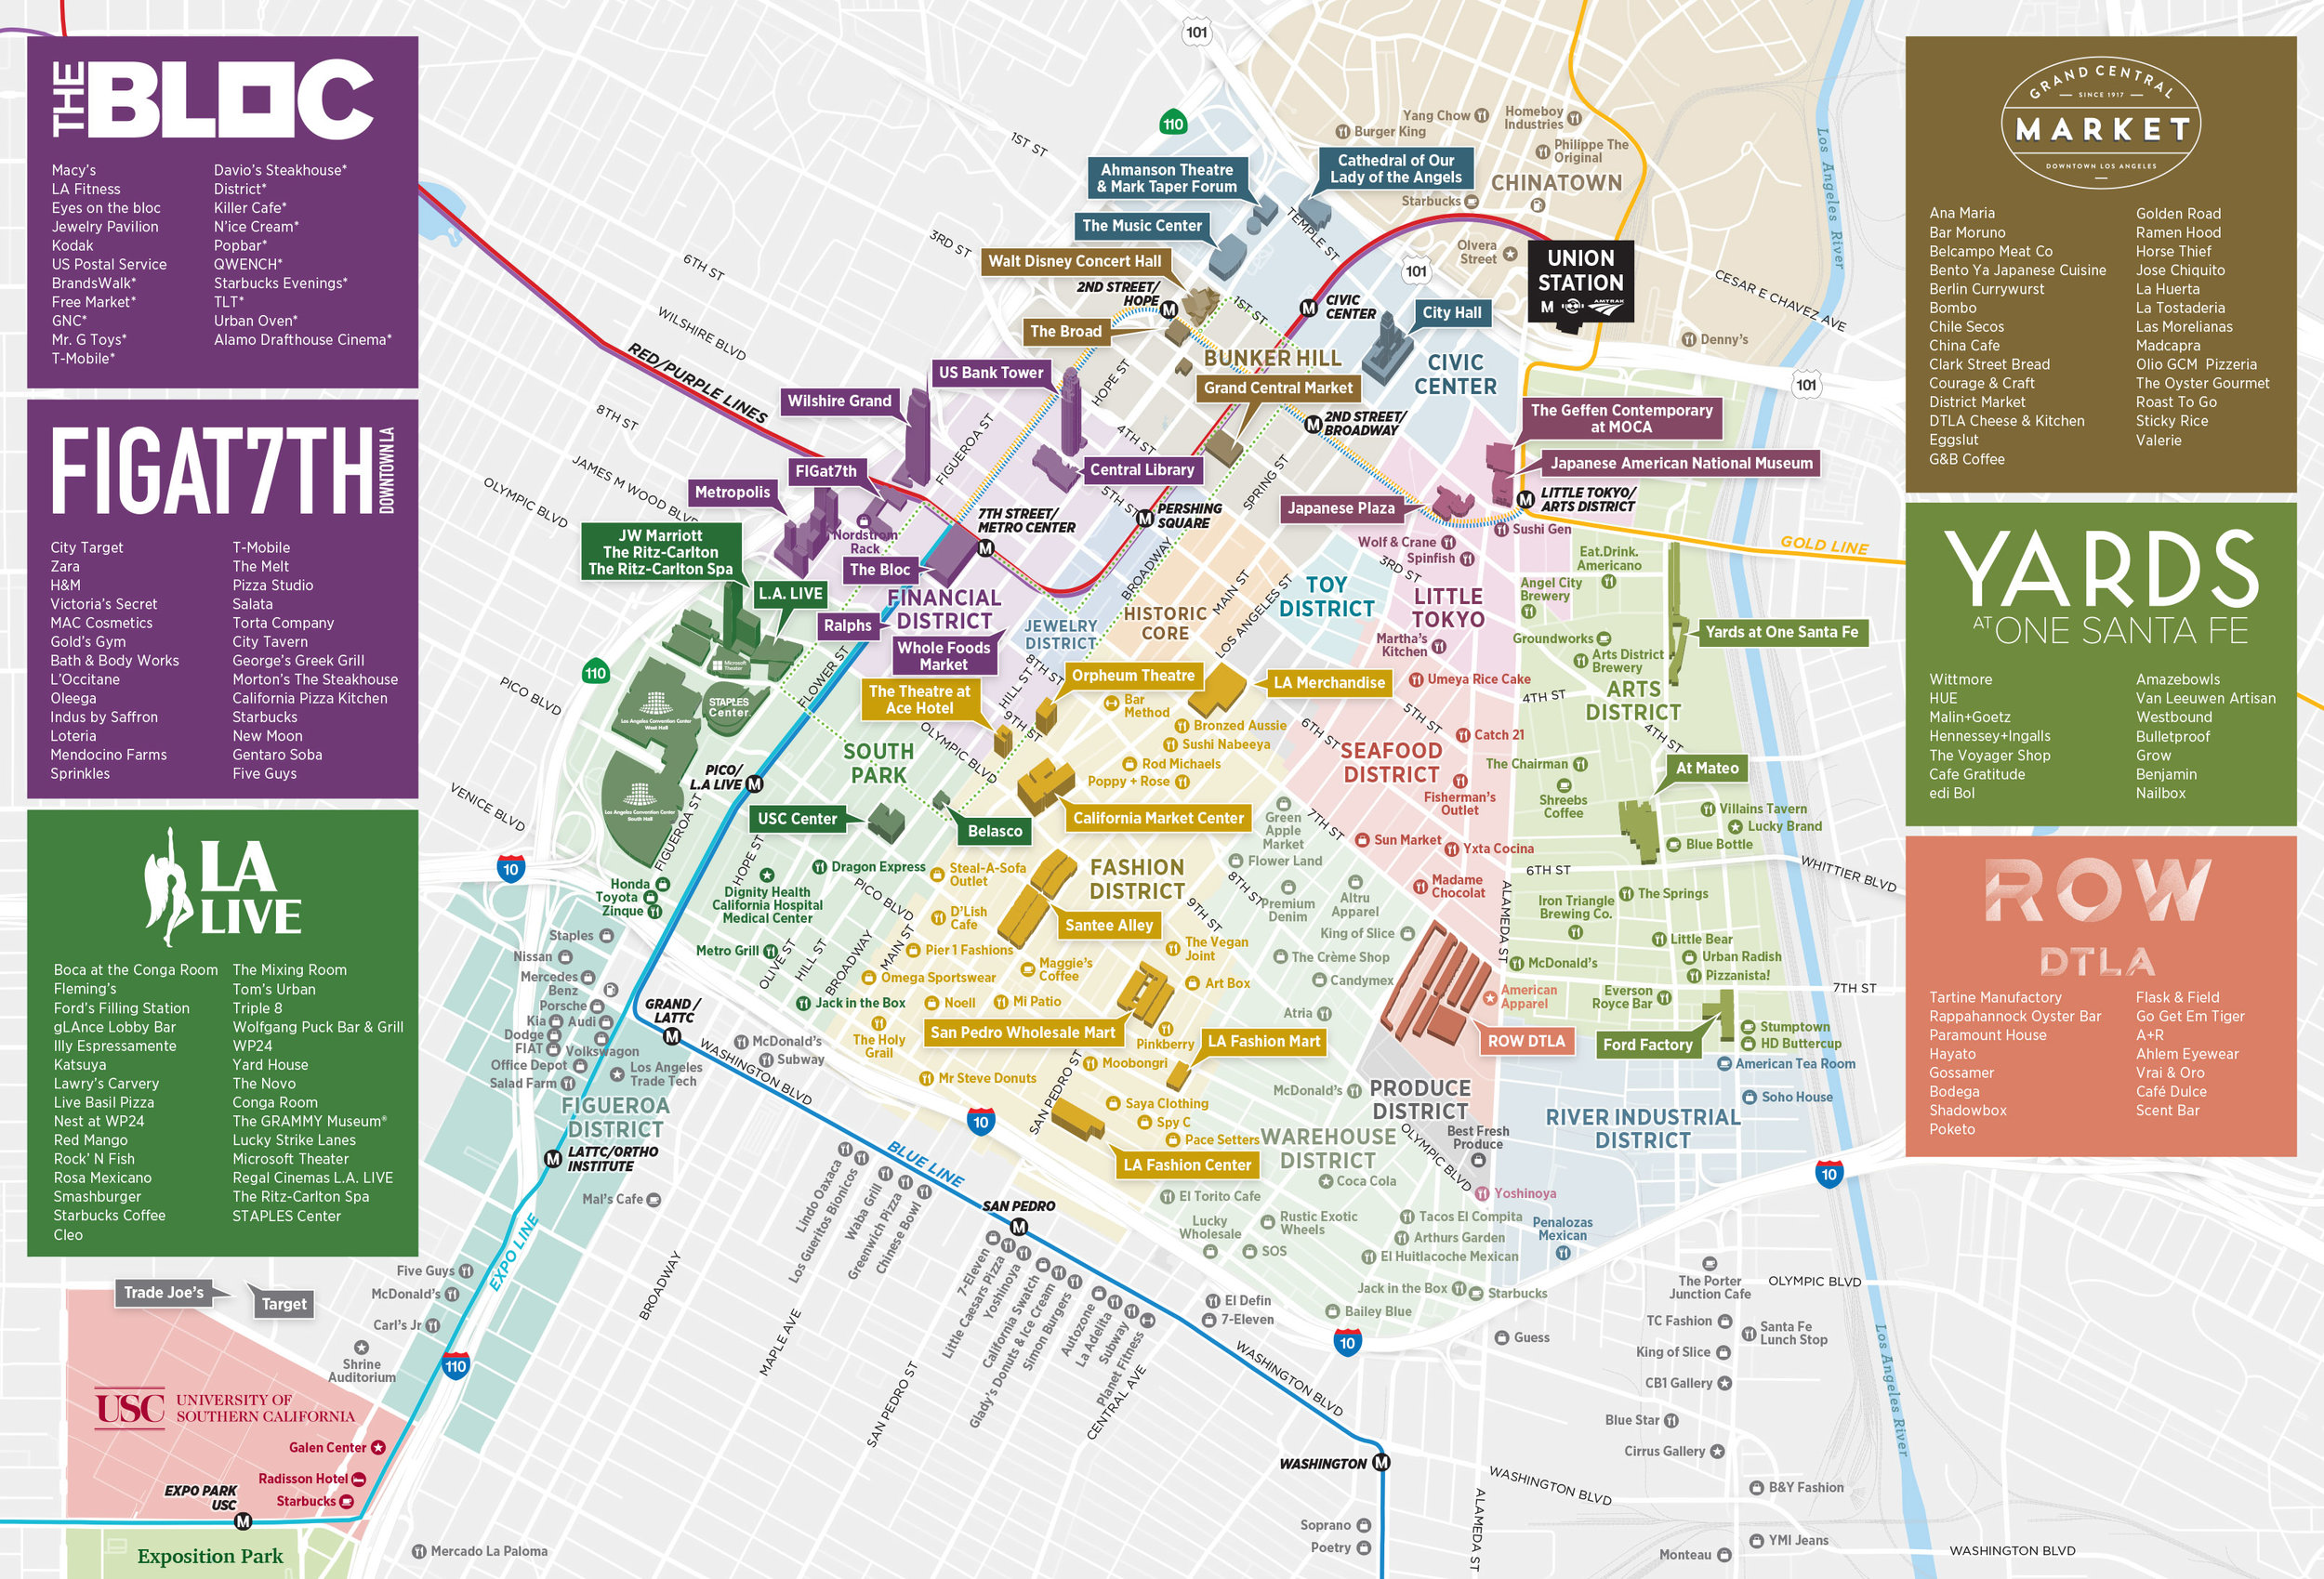 DTLA Downtown Los Angeles CA 3D Amenities Map.jpg